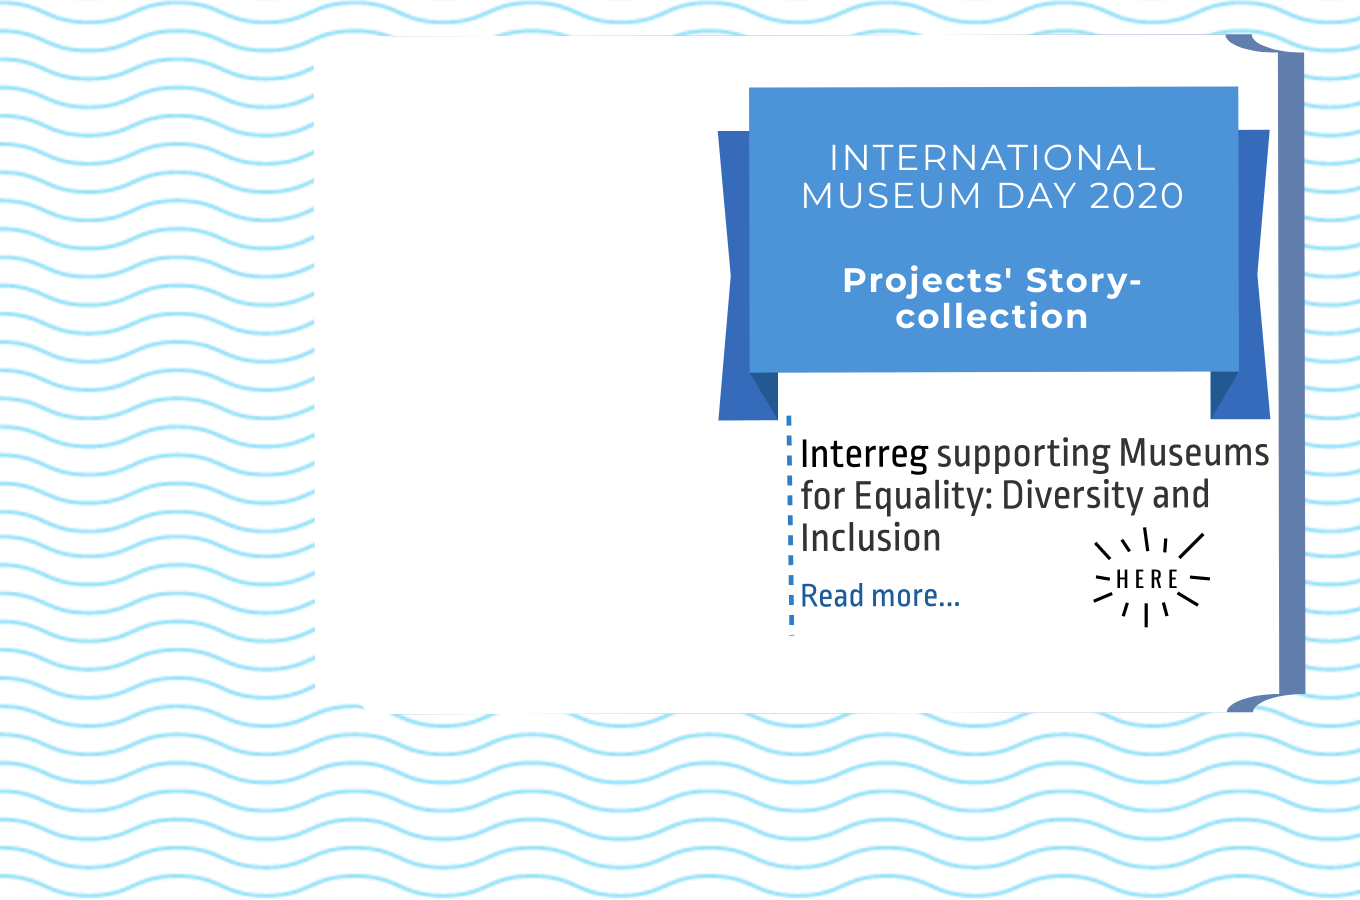 Interreg Italy-Croatia Programme supporting Museums for Equality: Diversity and Inclusion